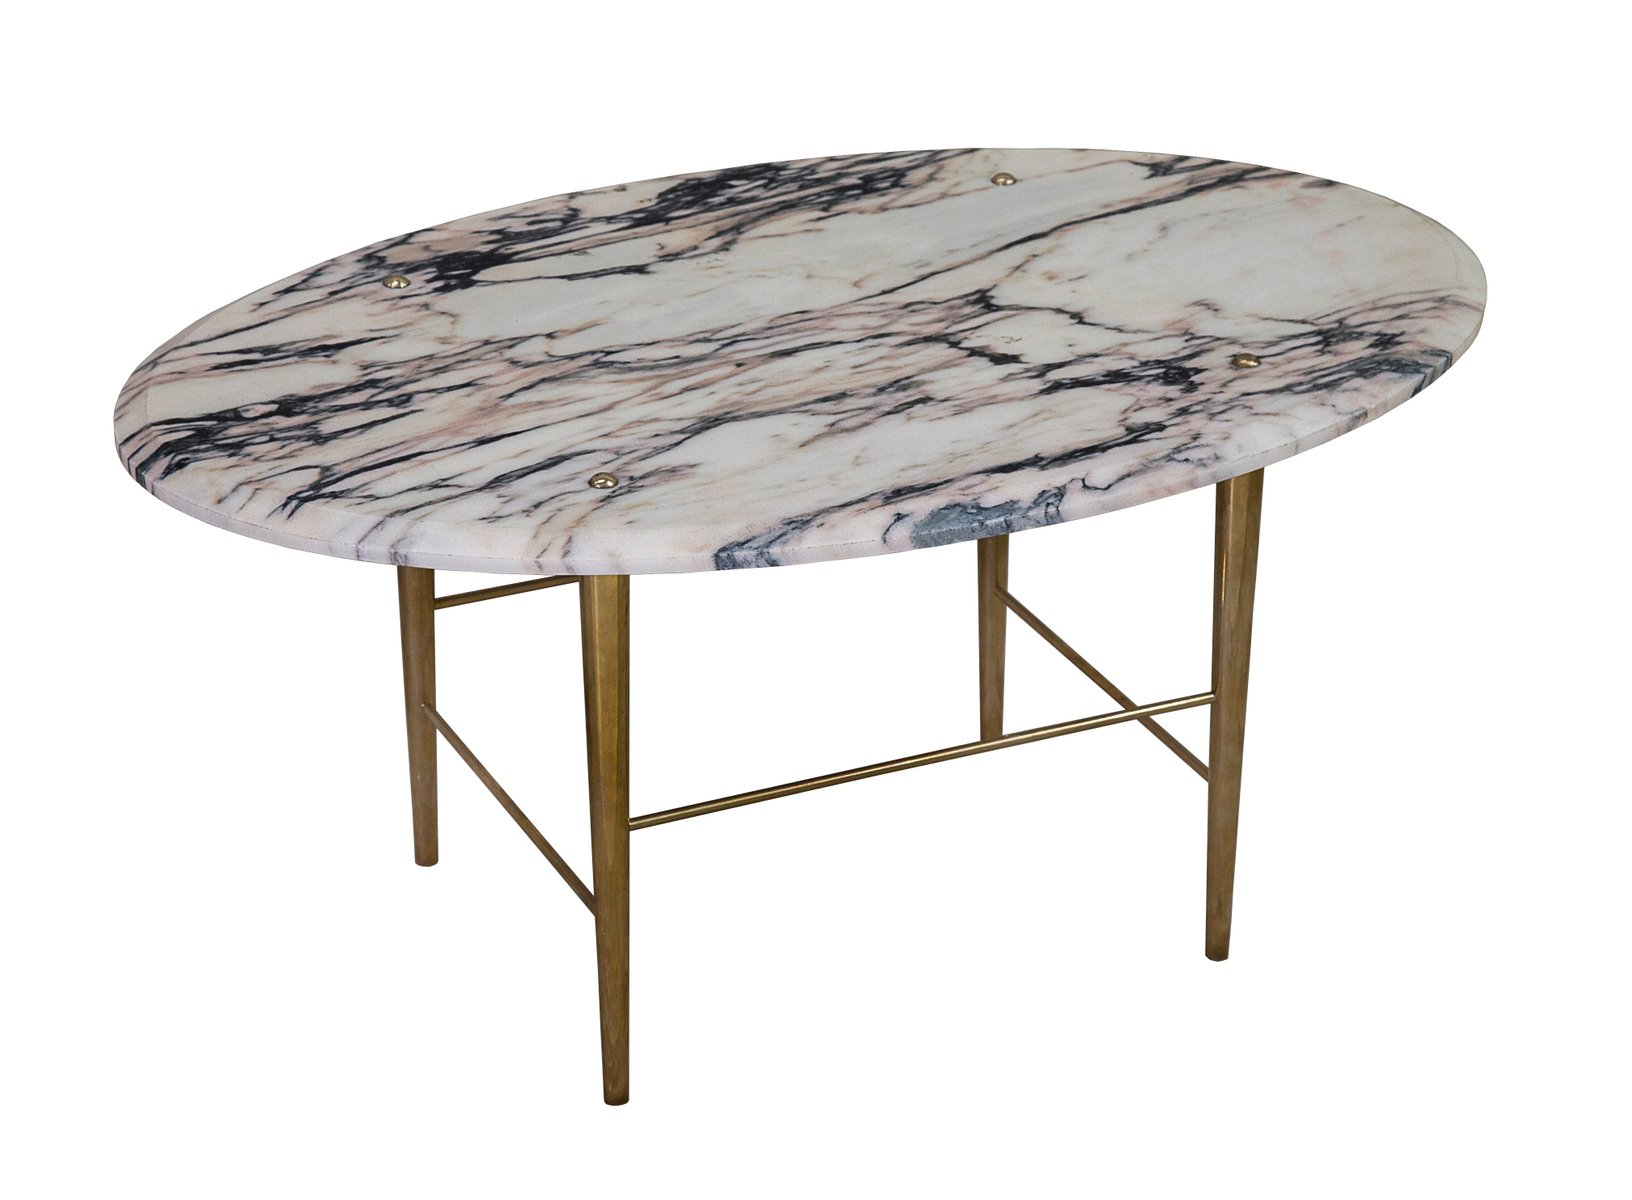 Stud coffee table in vulcanatta marble brass by lind almond for novocastrian